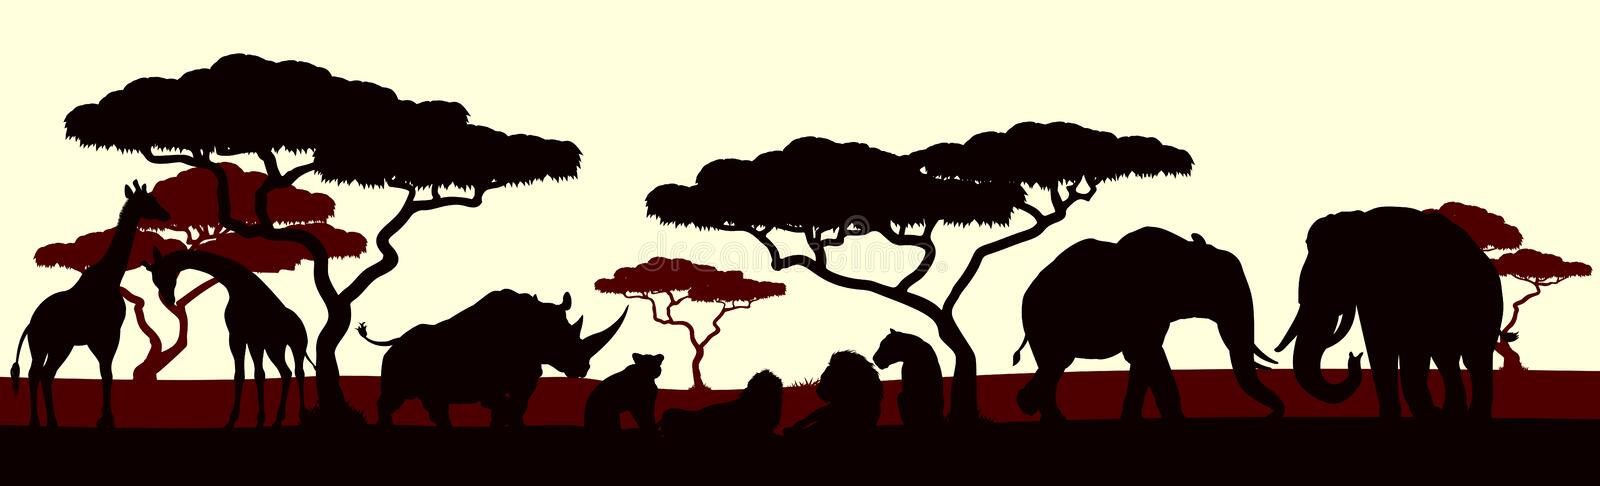 Animal Silhouette African Safari Landscape Scene. An African safari animal silhouette scene landscape stock illustration